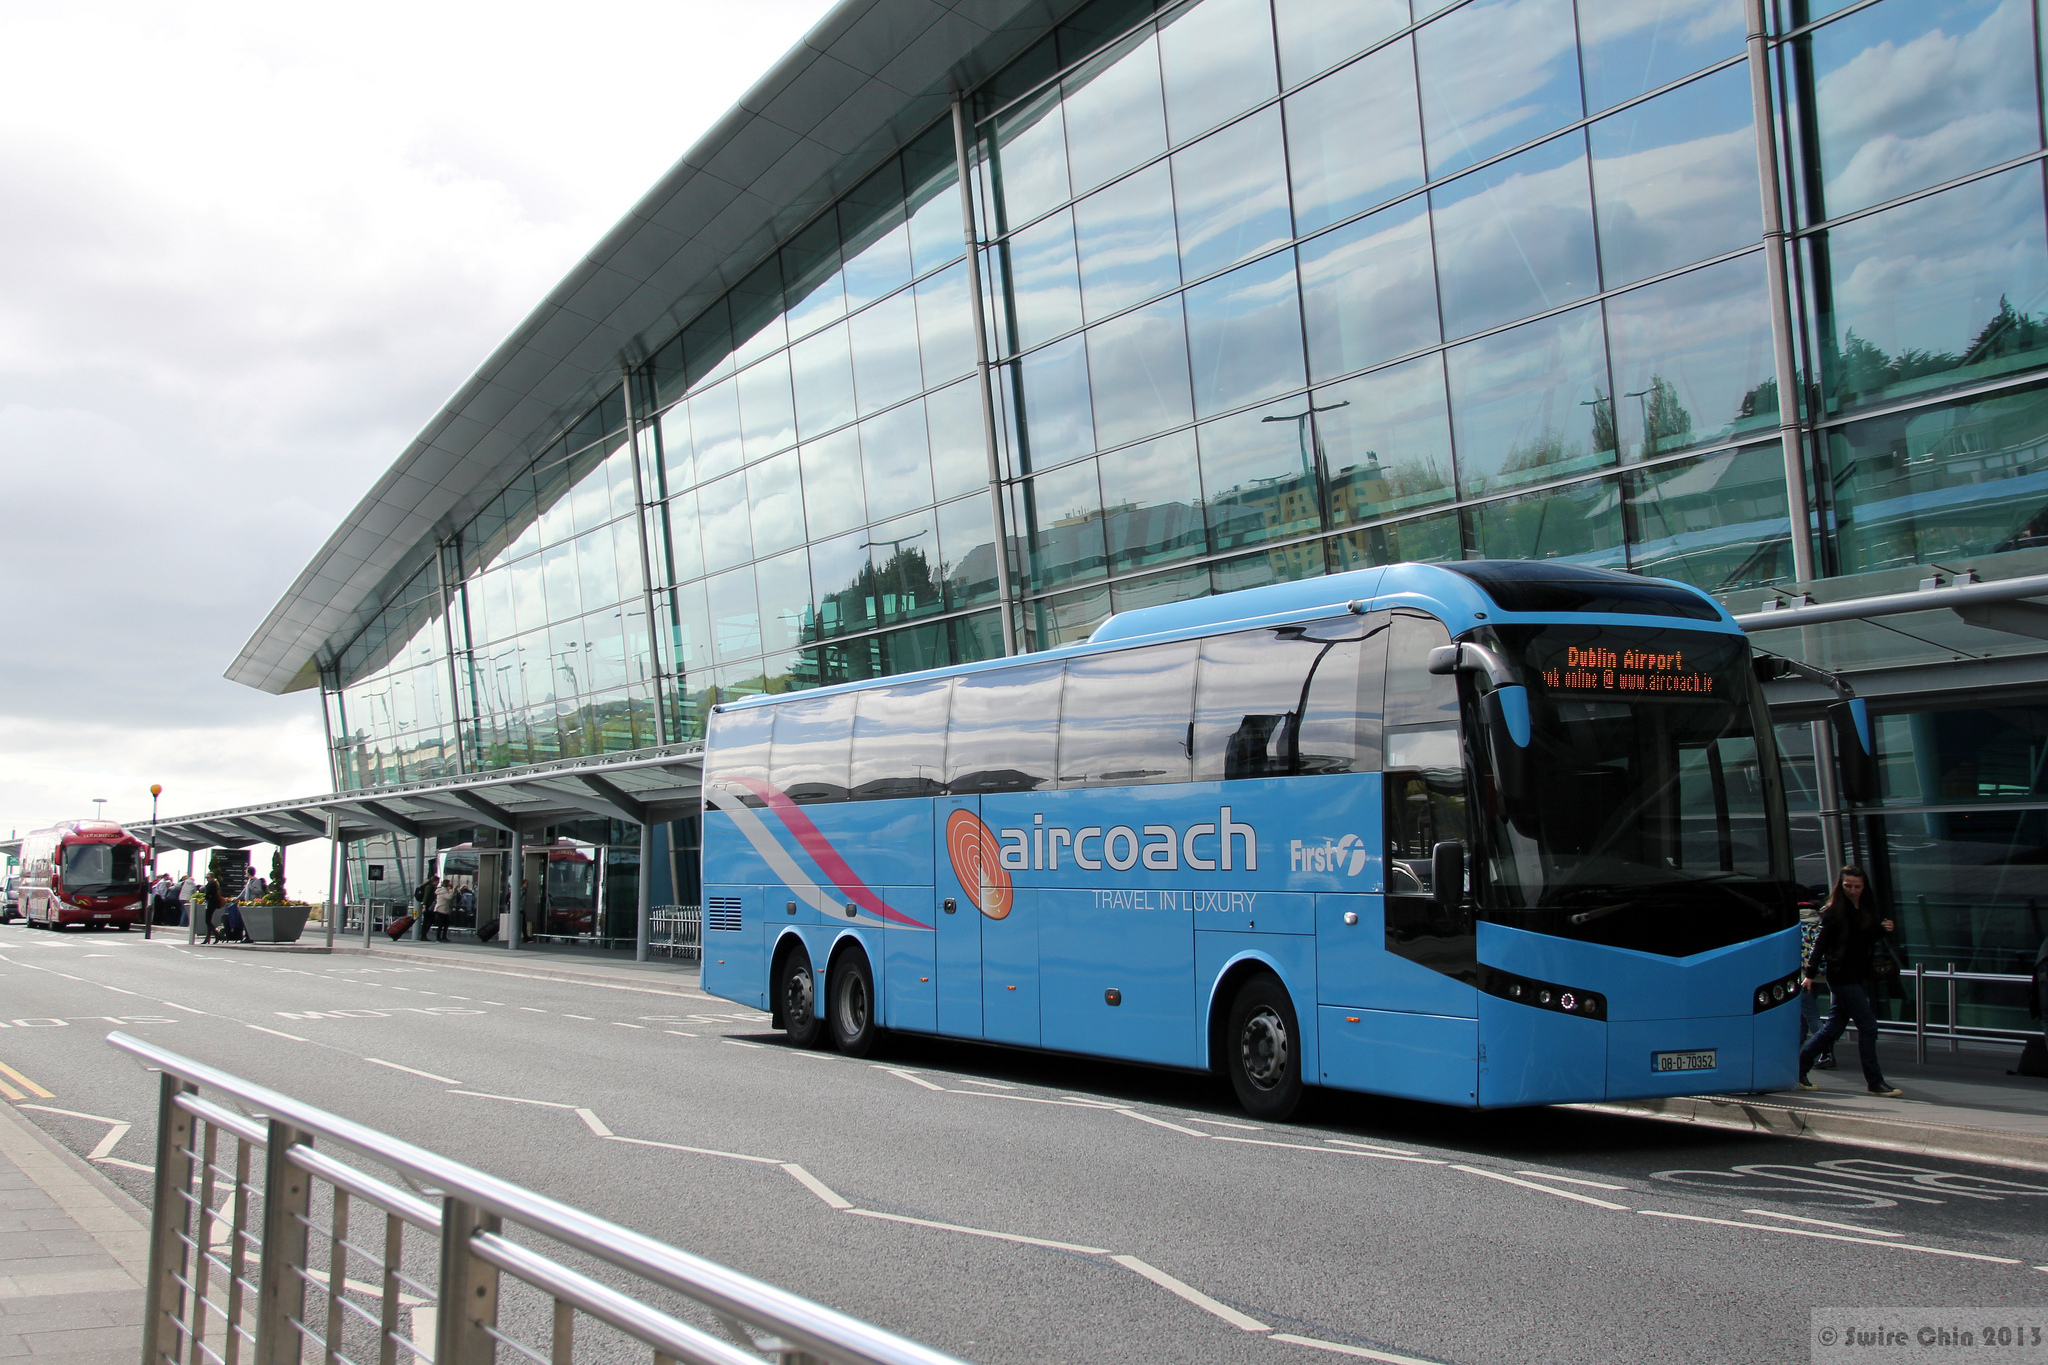 An Aircoach bus in front of Dublin Airport - Canadian Pacific - cc